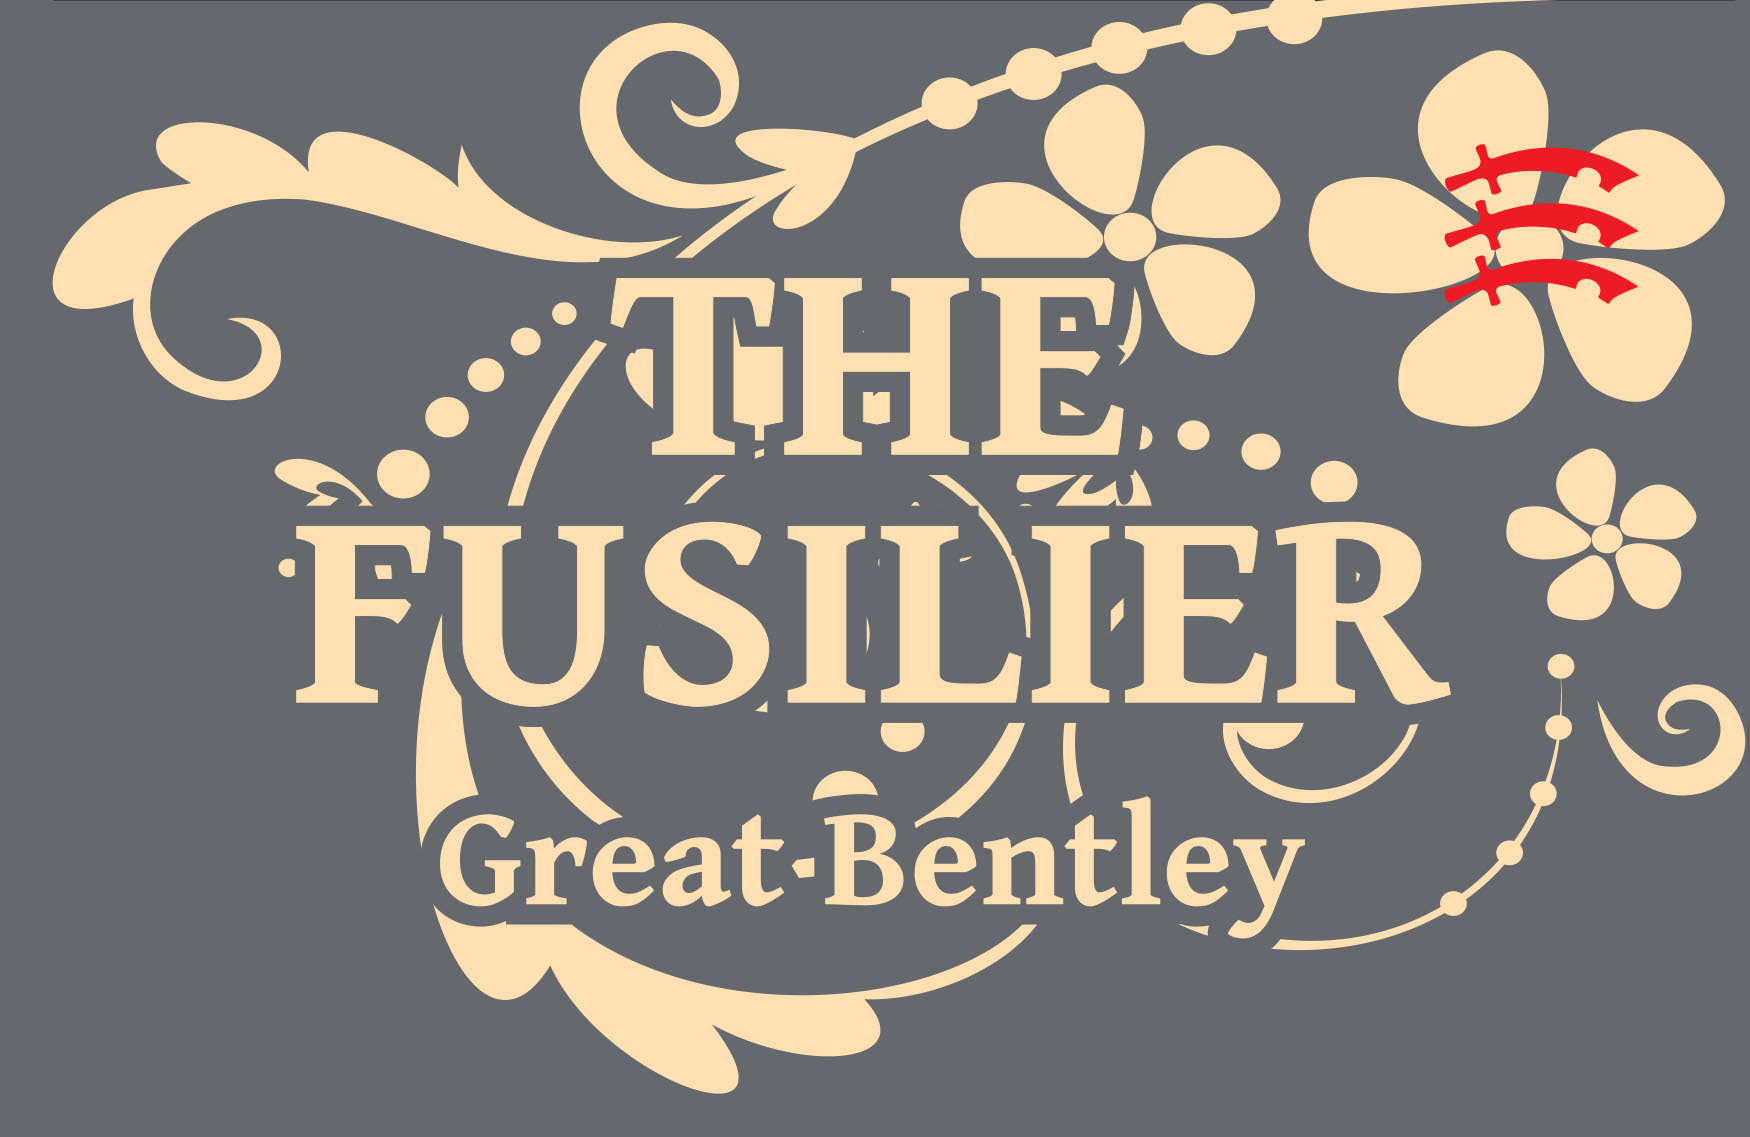 The Fusilier Bar & Restaurant